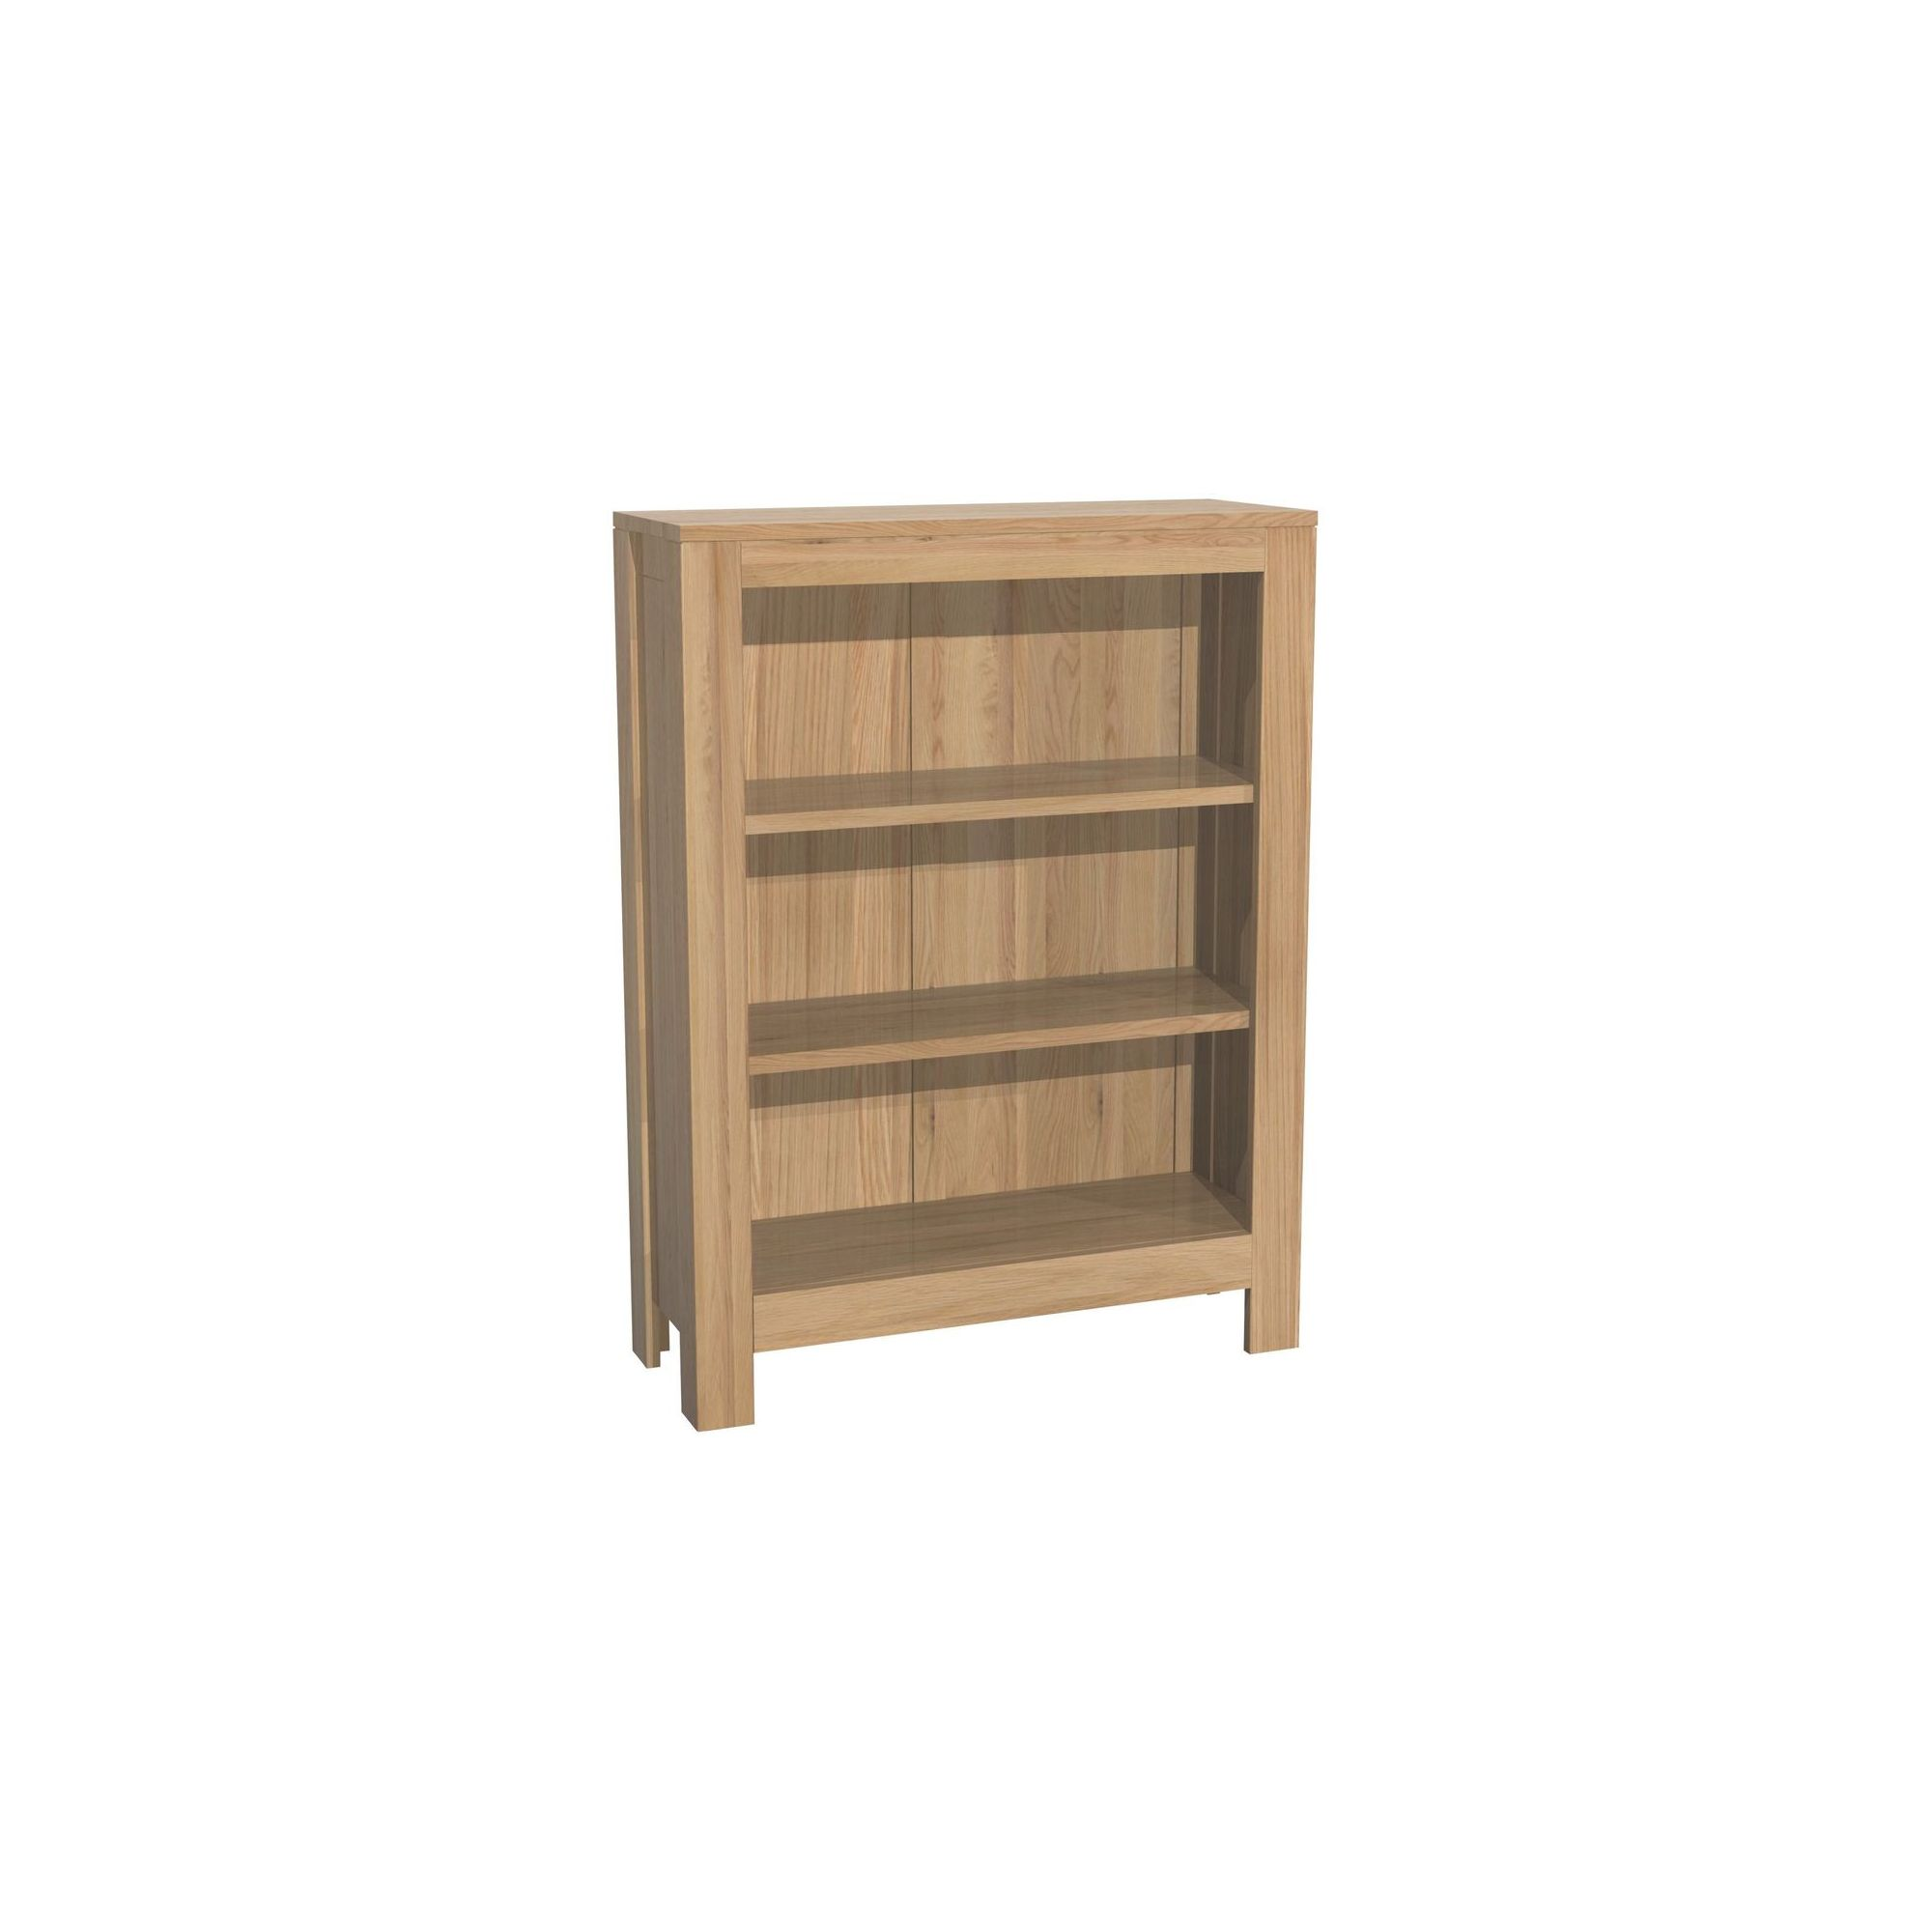 Kelburn Furniture Milano Wide Bookcase in Clear Satin Lacquer at Tesco Direct